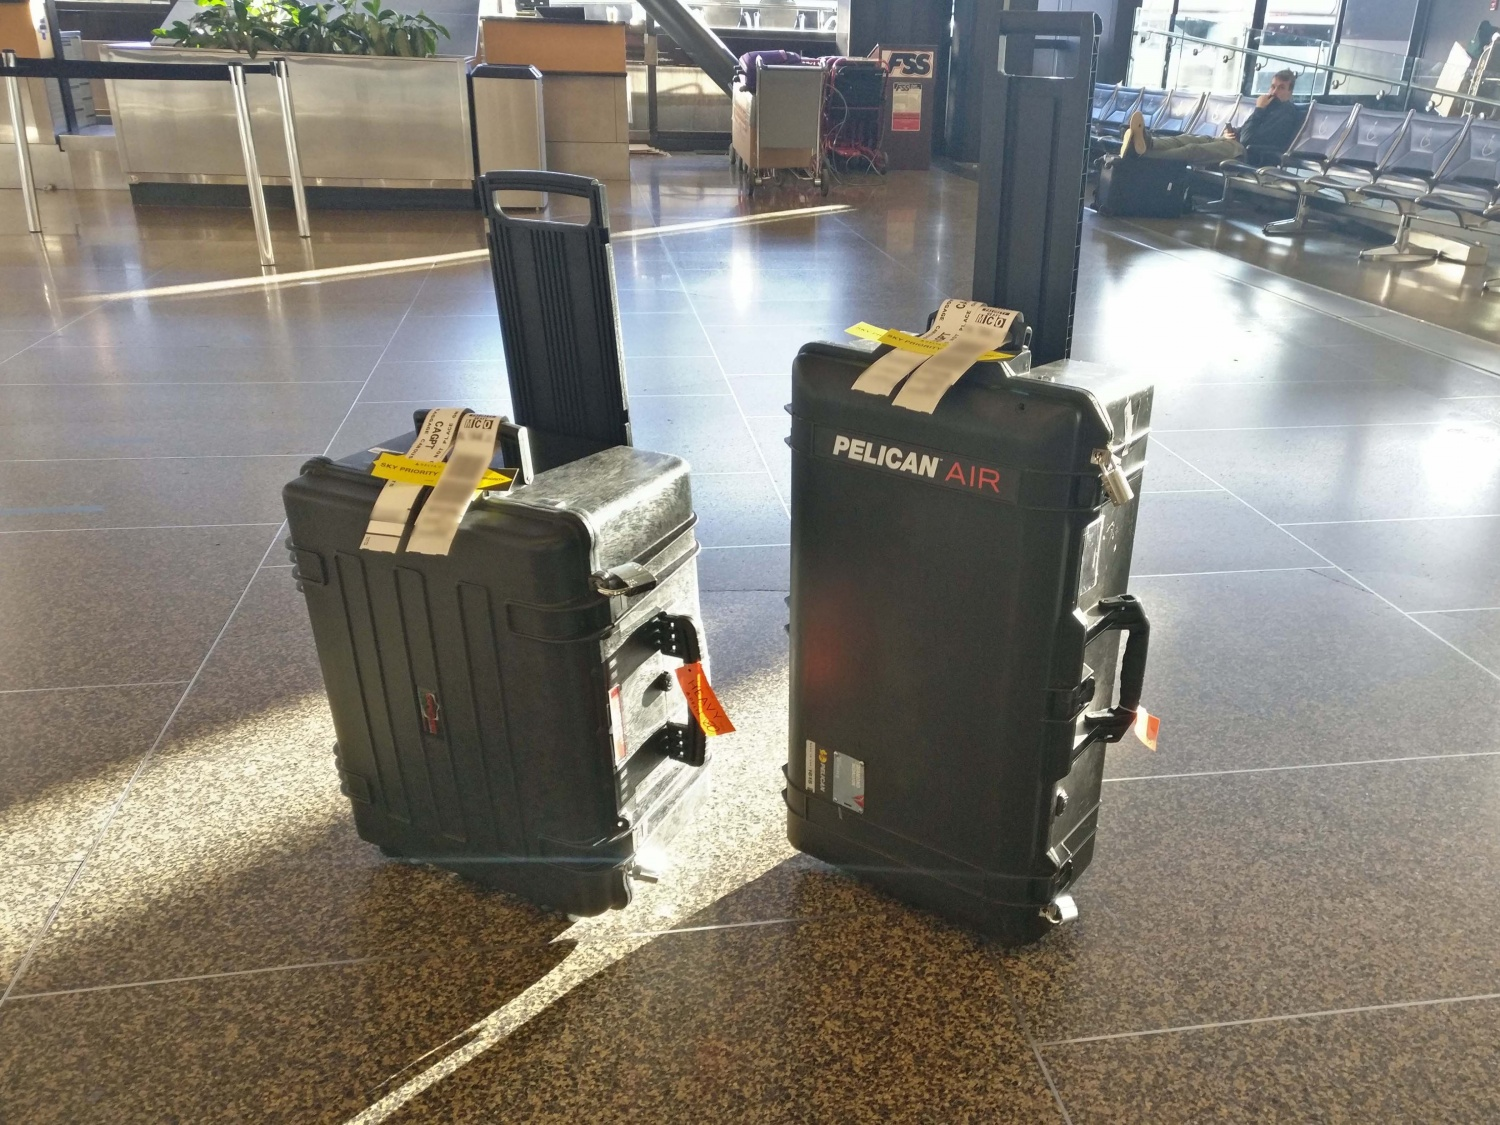 The author's new Explorer Case (left) next to his one remaining Pelican Air case (right) as he prepares to surrender them to the TSA and his air carrier's luggage throwers.